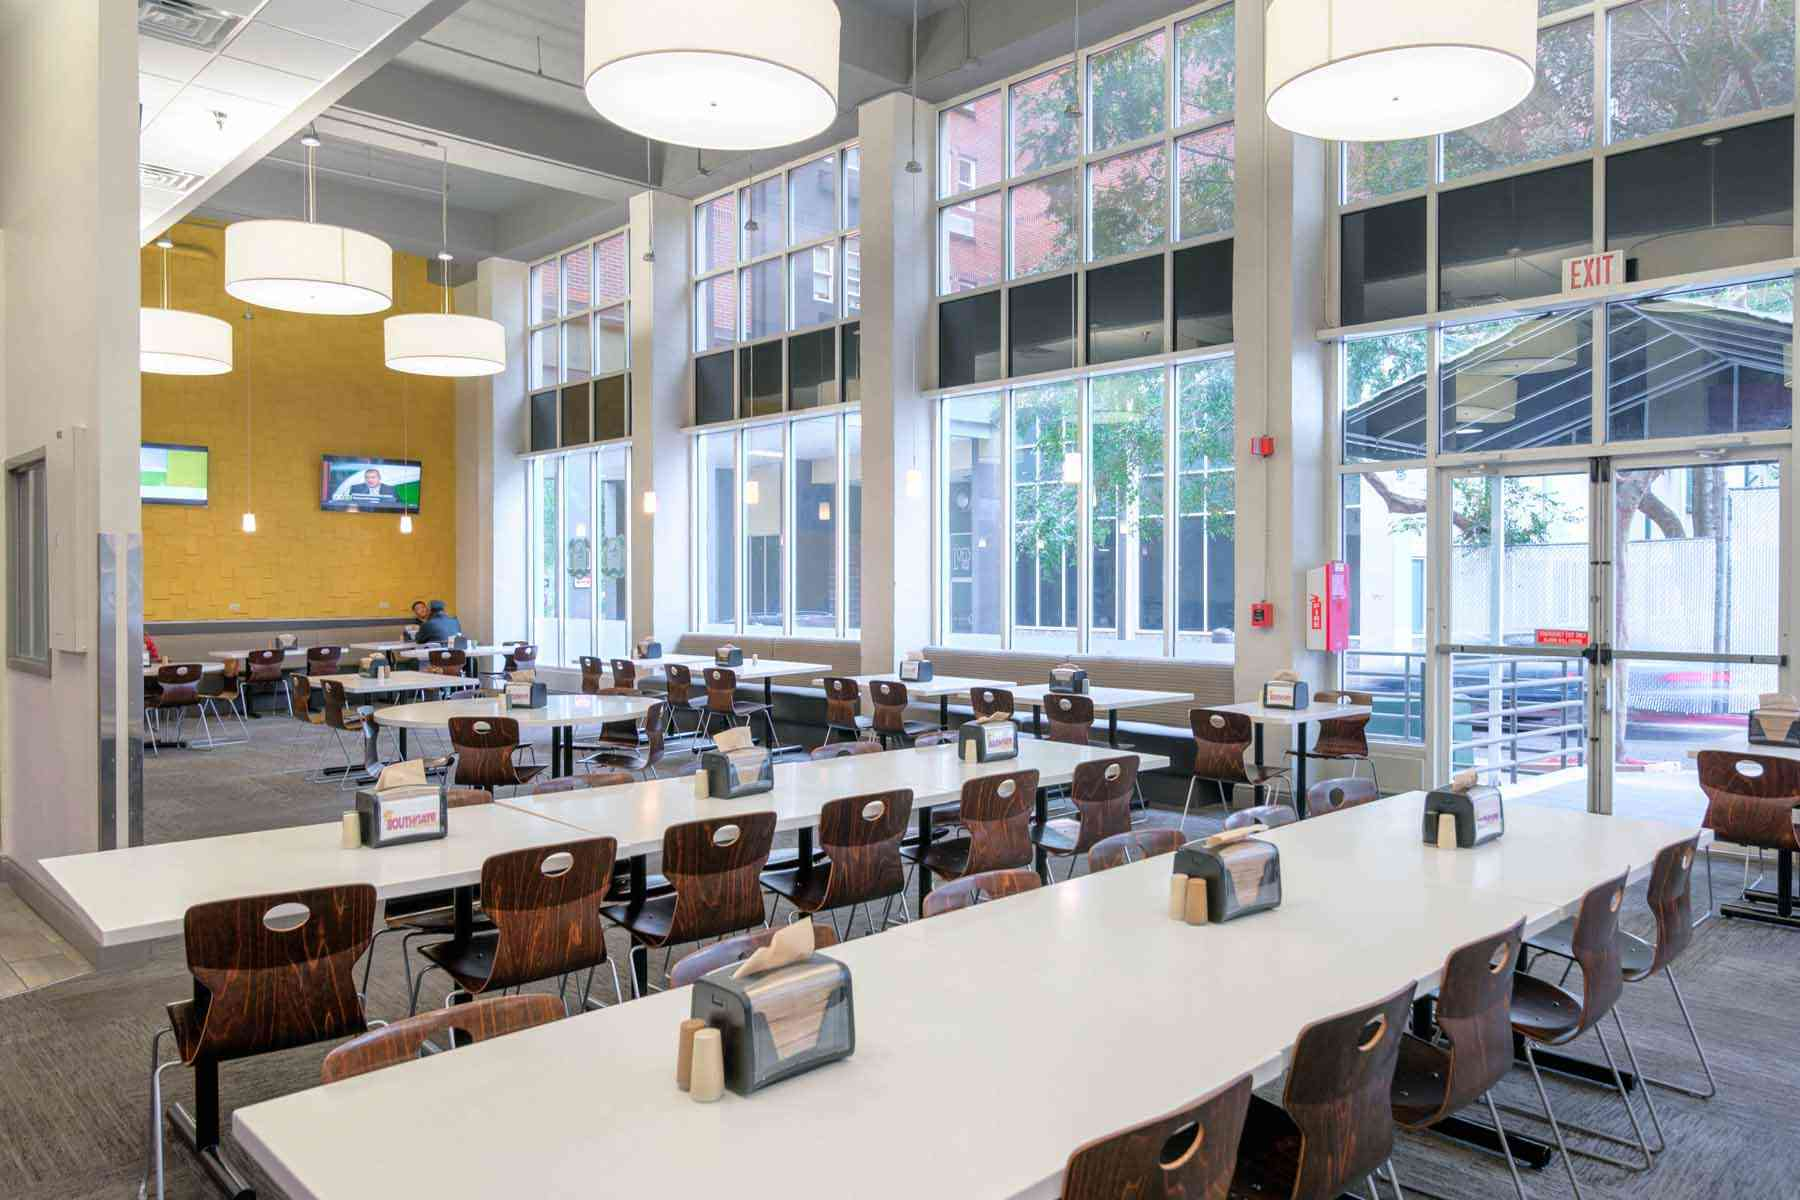 SouthGate-Campus-Centre-Tallahassee-FL-Dining-Area-Unilodgers